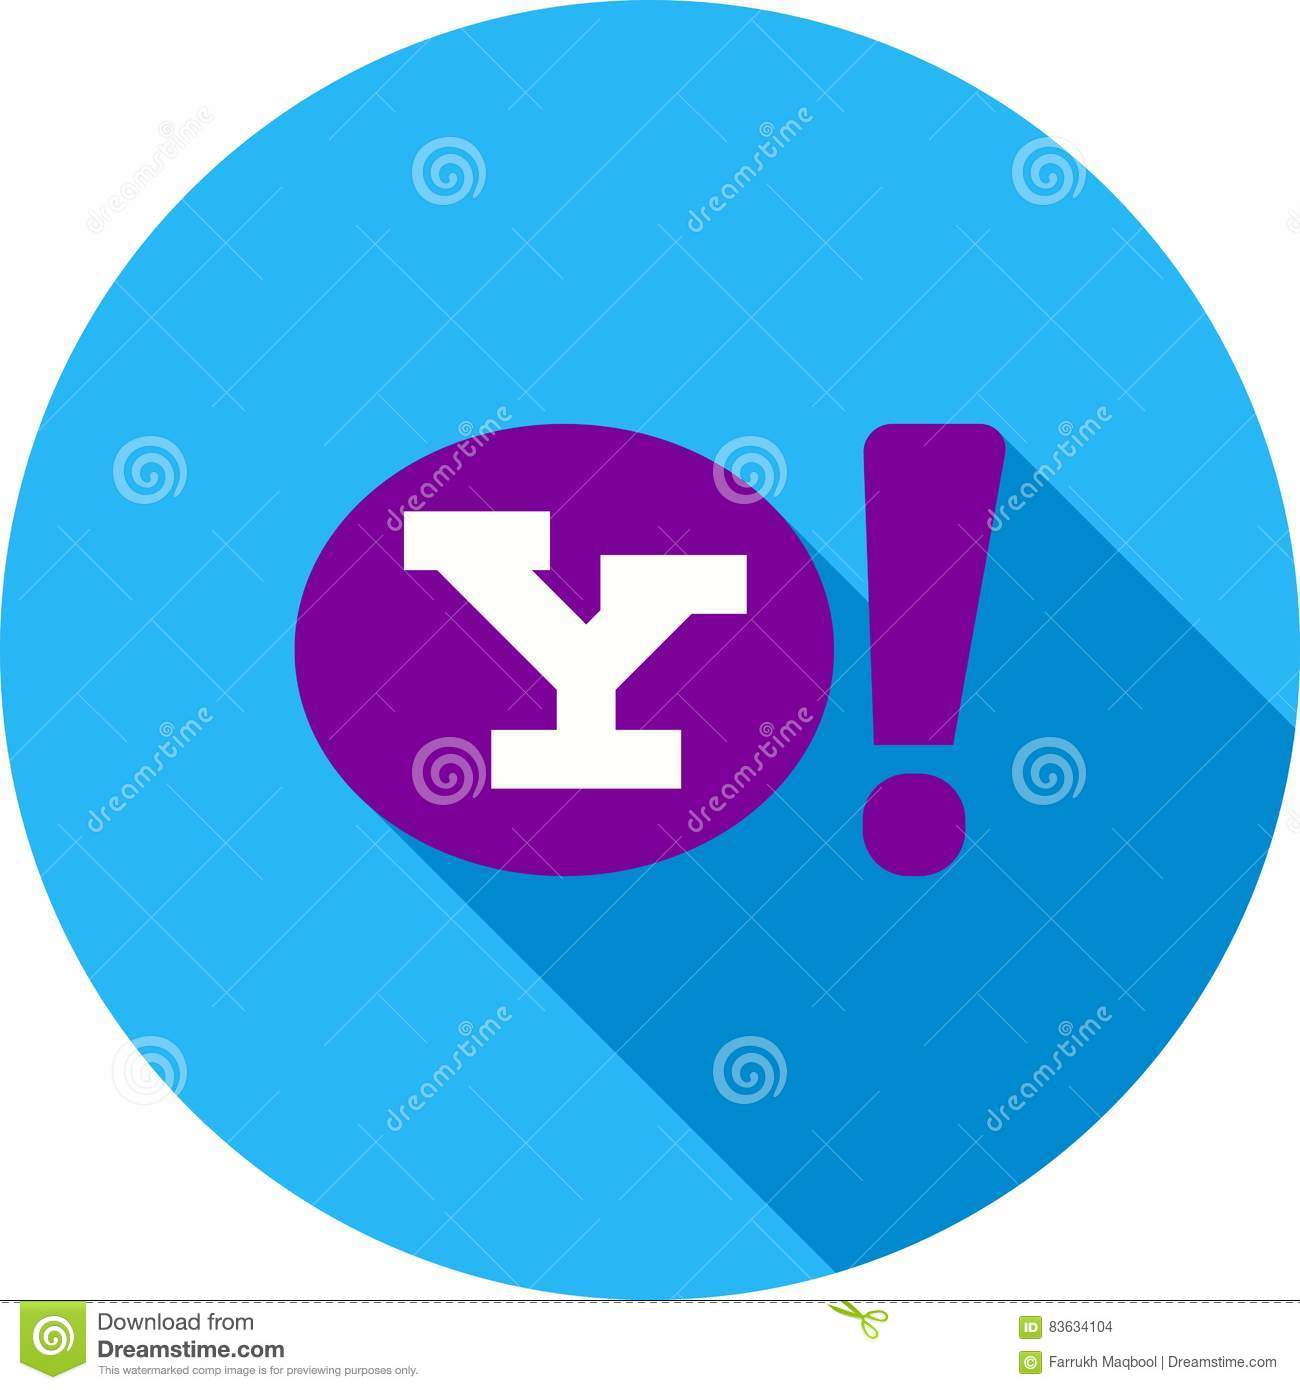 Yahoo Editorial Stock Image Illustration Of Icon Concept 83634104